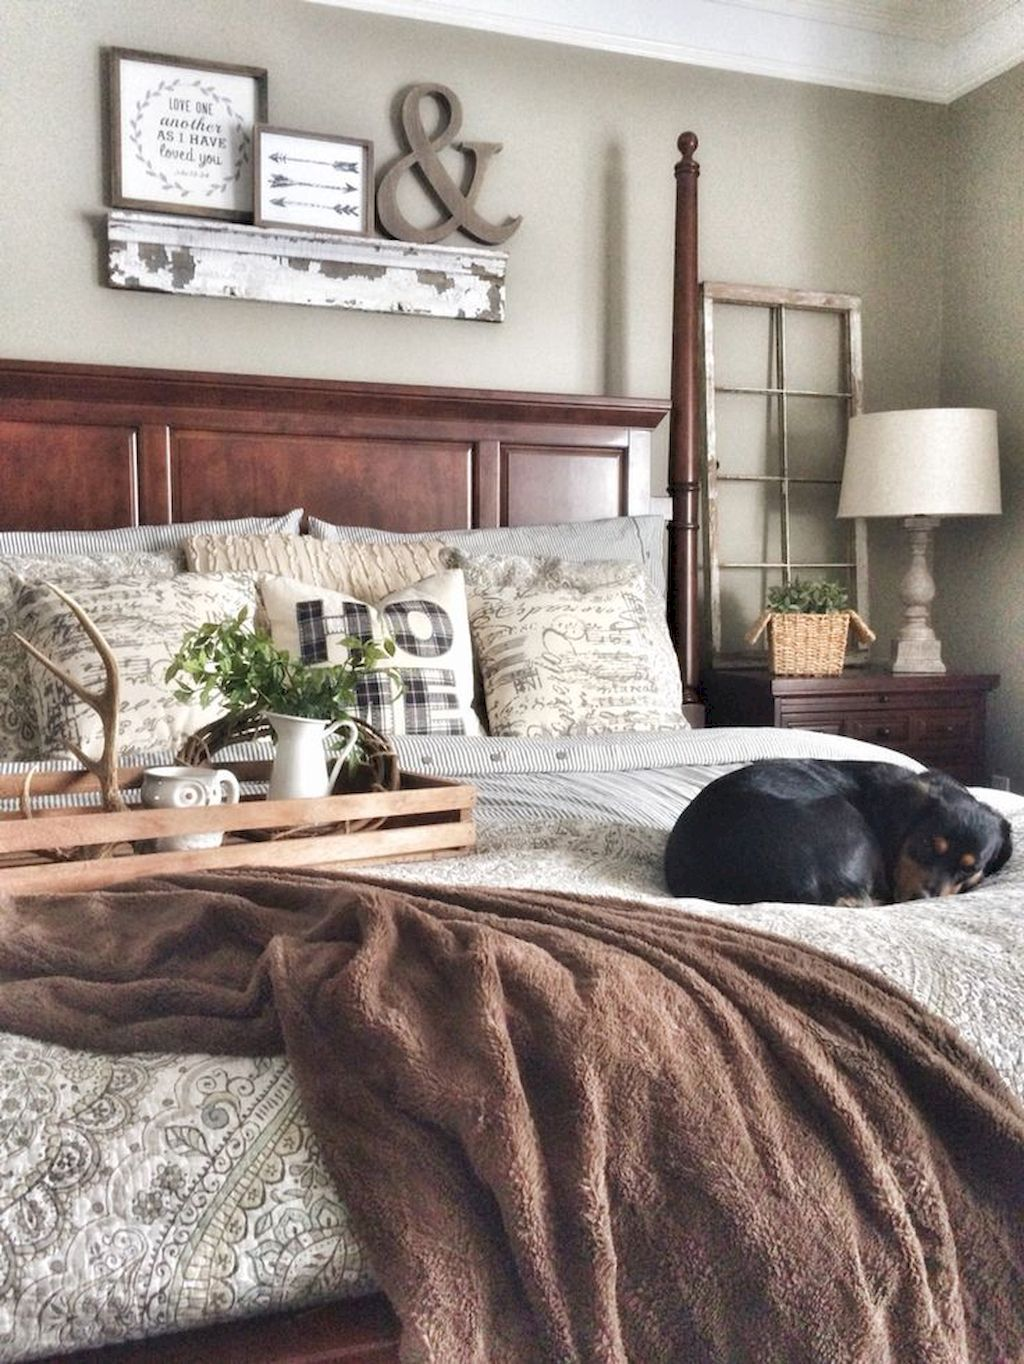 Rustic farmhouse style master bedroom ideas (32) | Rustic Decorating on romantic bedroom ideas, rustic master bedroom bedding, rustic bedroom furniture, bathroom decorating ideas, rustic master bedroom inspiration, kitchen decorating ideas, rustic master bedroom design, cozy small bedroom ideas, bedroom design ideas, rustic living decorating ideas, dining room decorating ideas, very small master bedroom ideas, cheap decorating ideas, rustic backyard decorating ideas, master bedroom painting ideas, entryway decorating ideas, rustic master bed, rustic interior decorating ideas, rustic turquoise bedroom set, boys bedroom painting ideas,